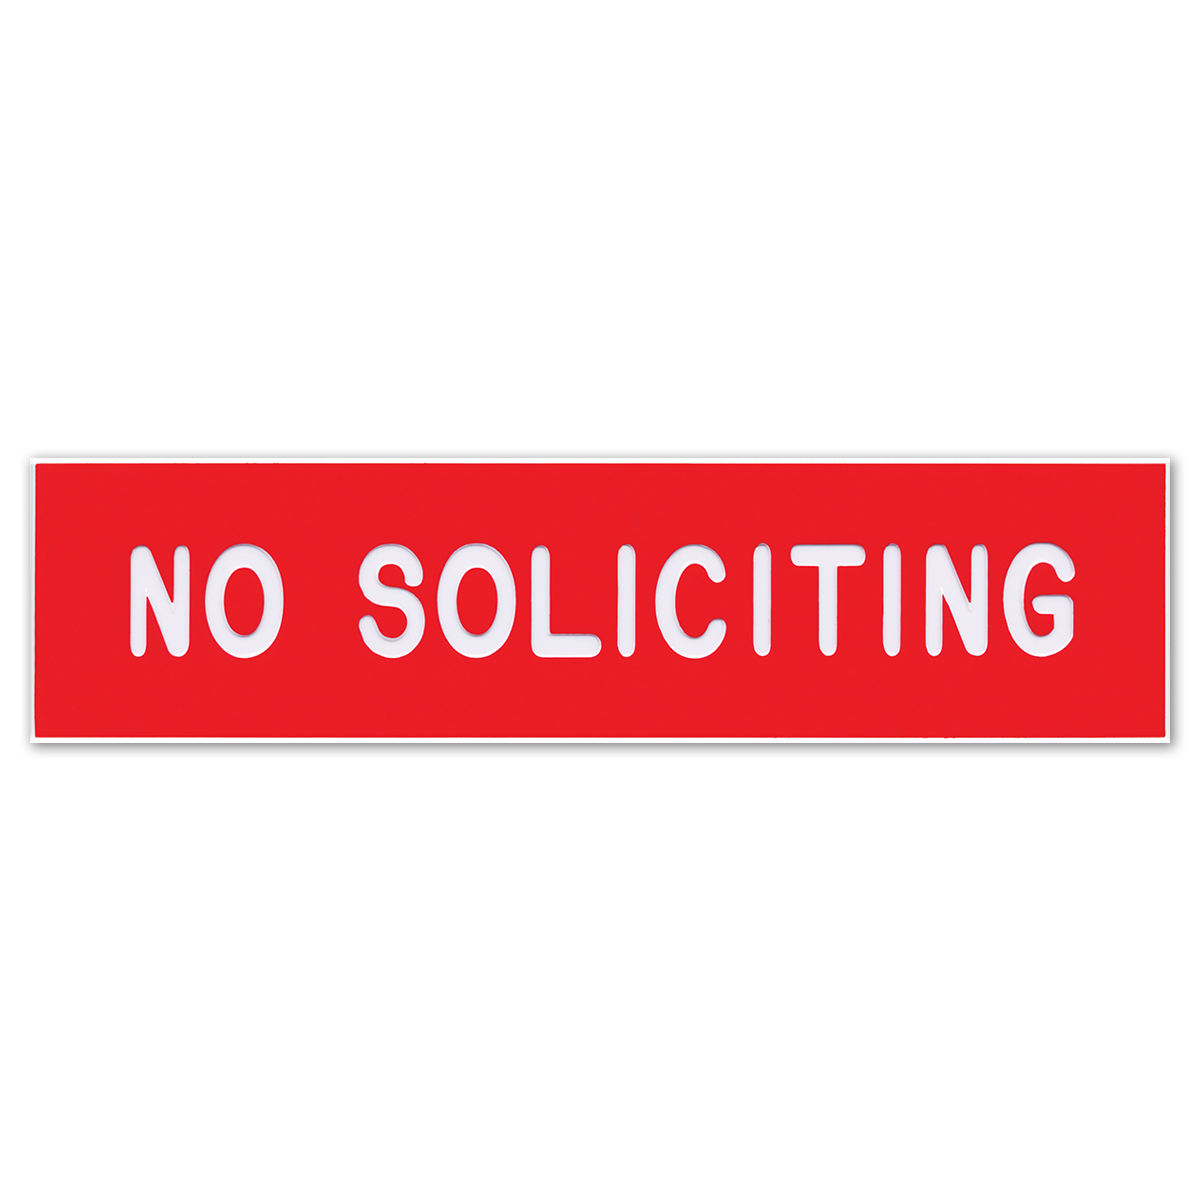 NO SOLICITING - Plastic Sign - 098001